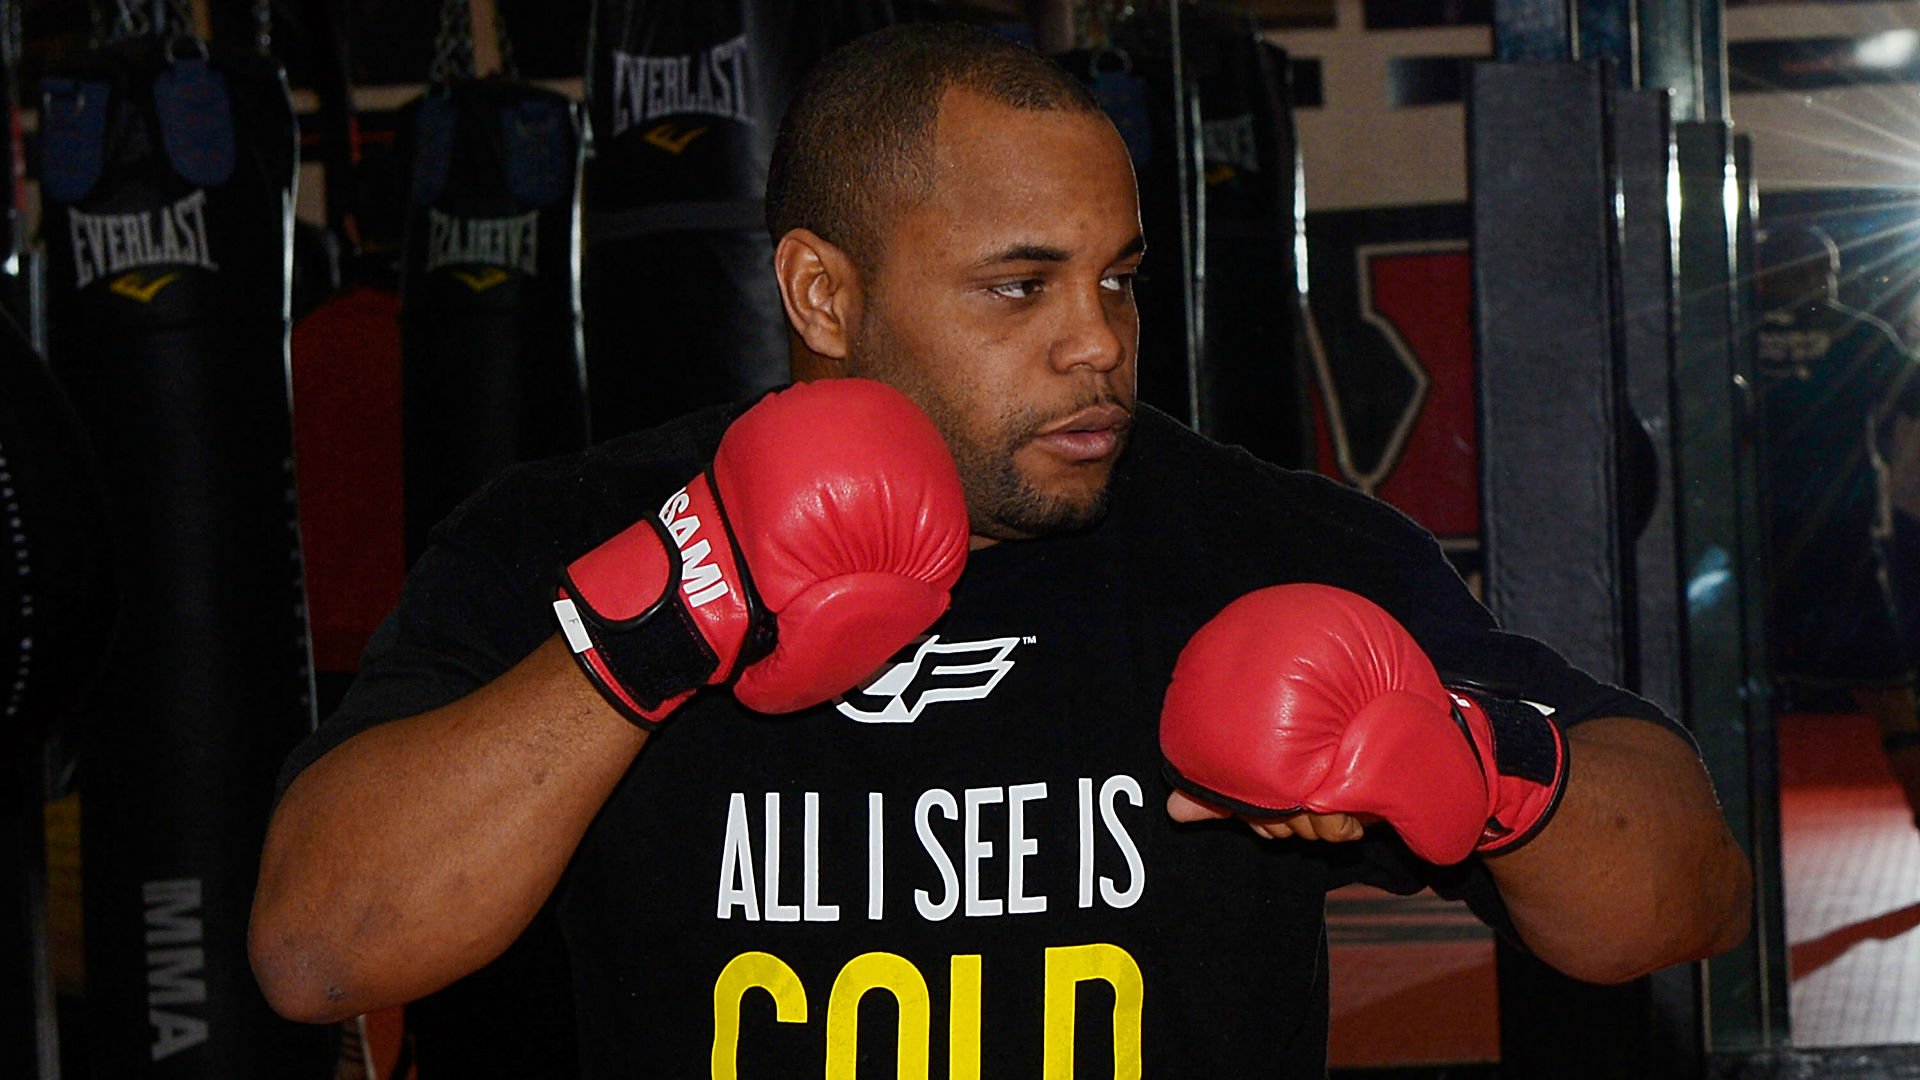 UFC 226: Daniel Cormier reflects on early MMA fights — 'He gave me a coffee and I went and fought'